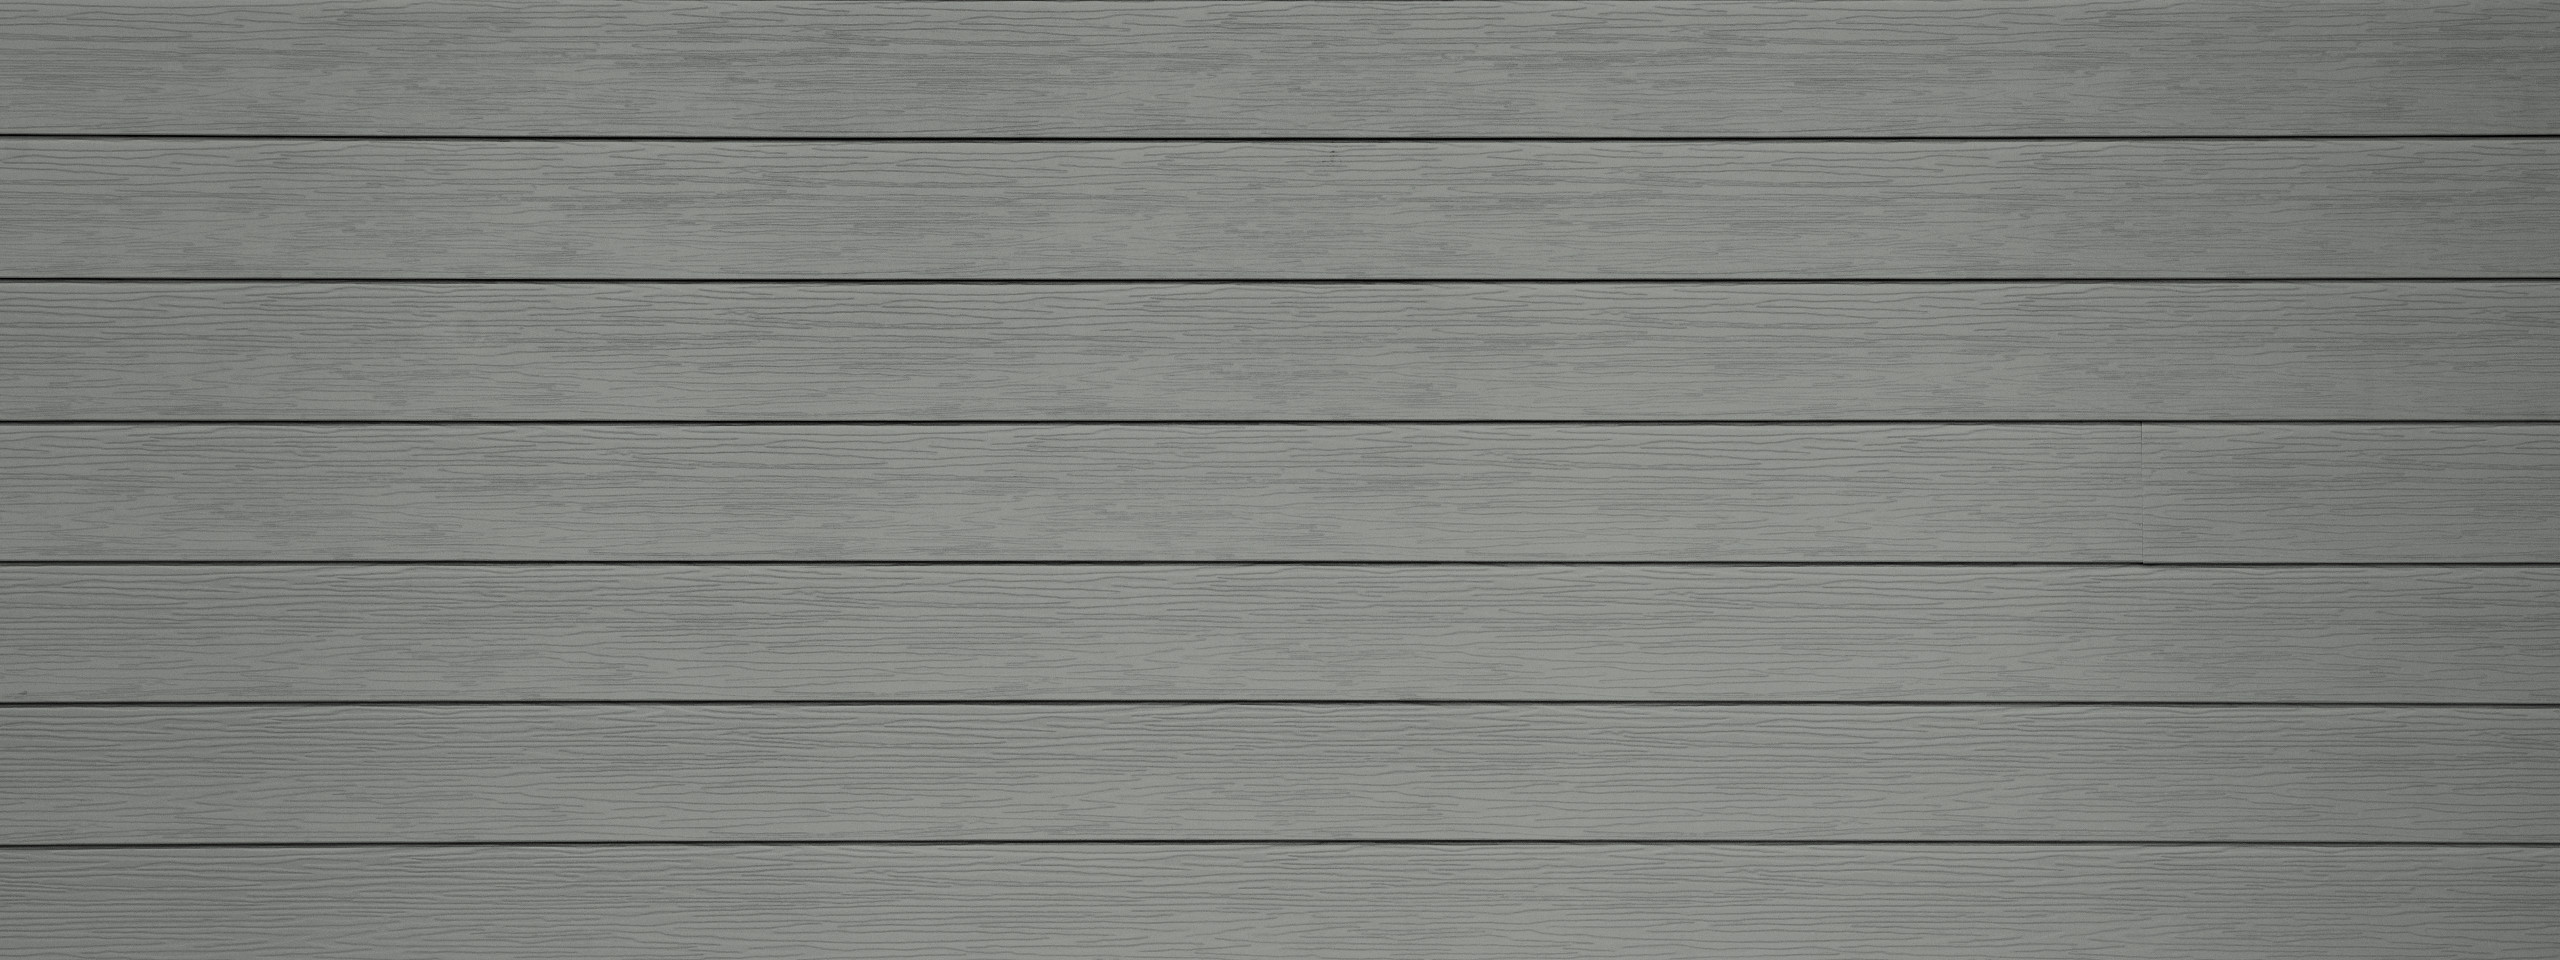 Entex traditional lap driftwood grey horizontal steel siding